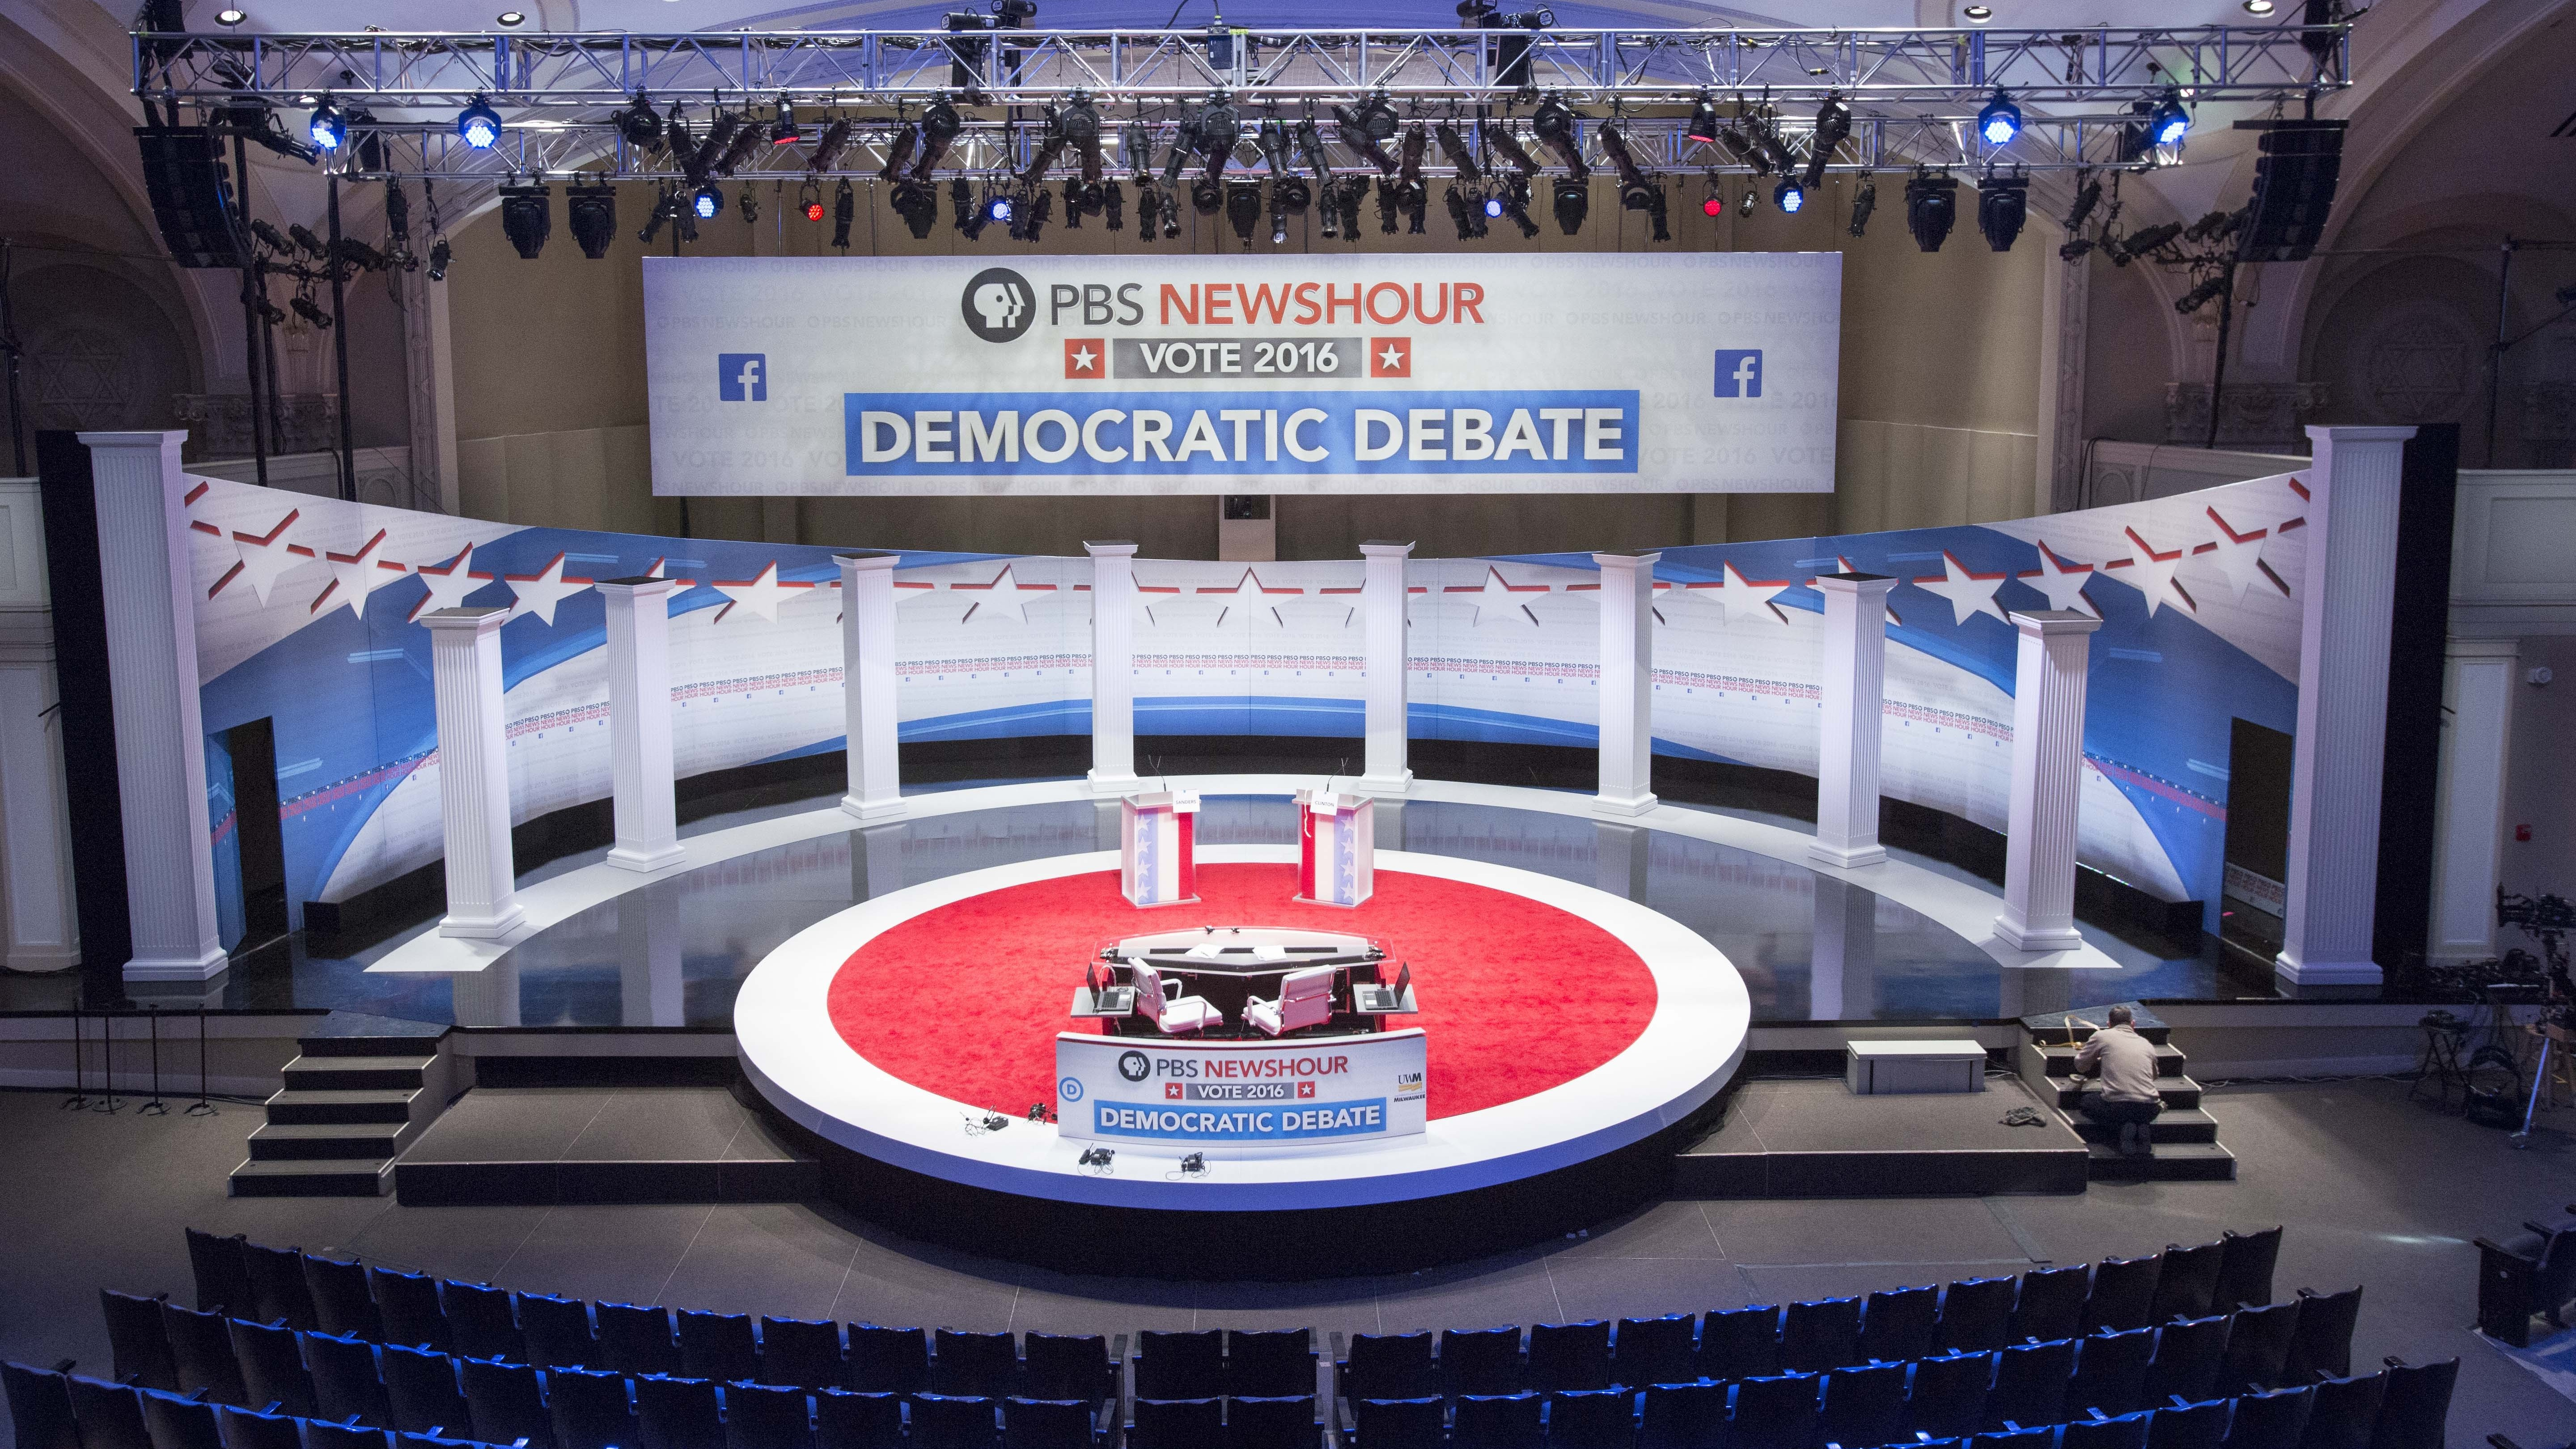 WATCH: Black Voters, Money in Politics Spotlighted In Democratic Debate